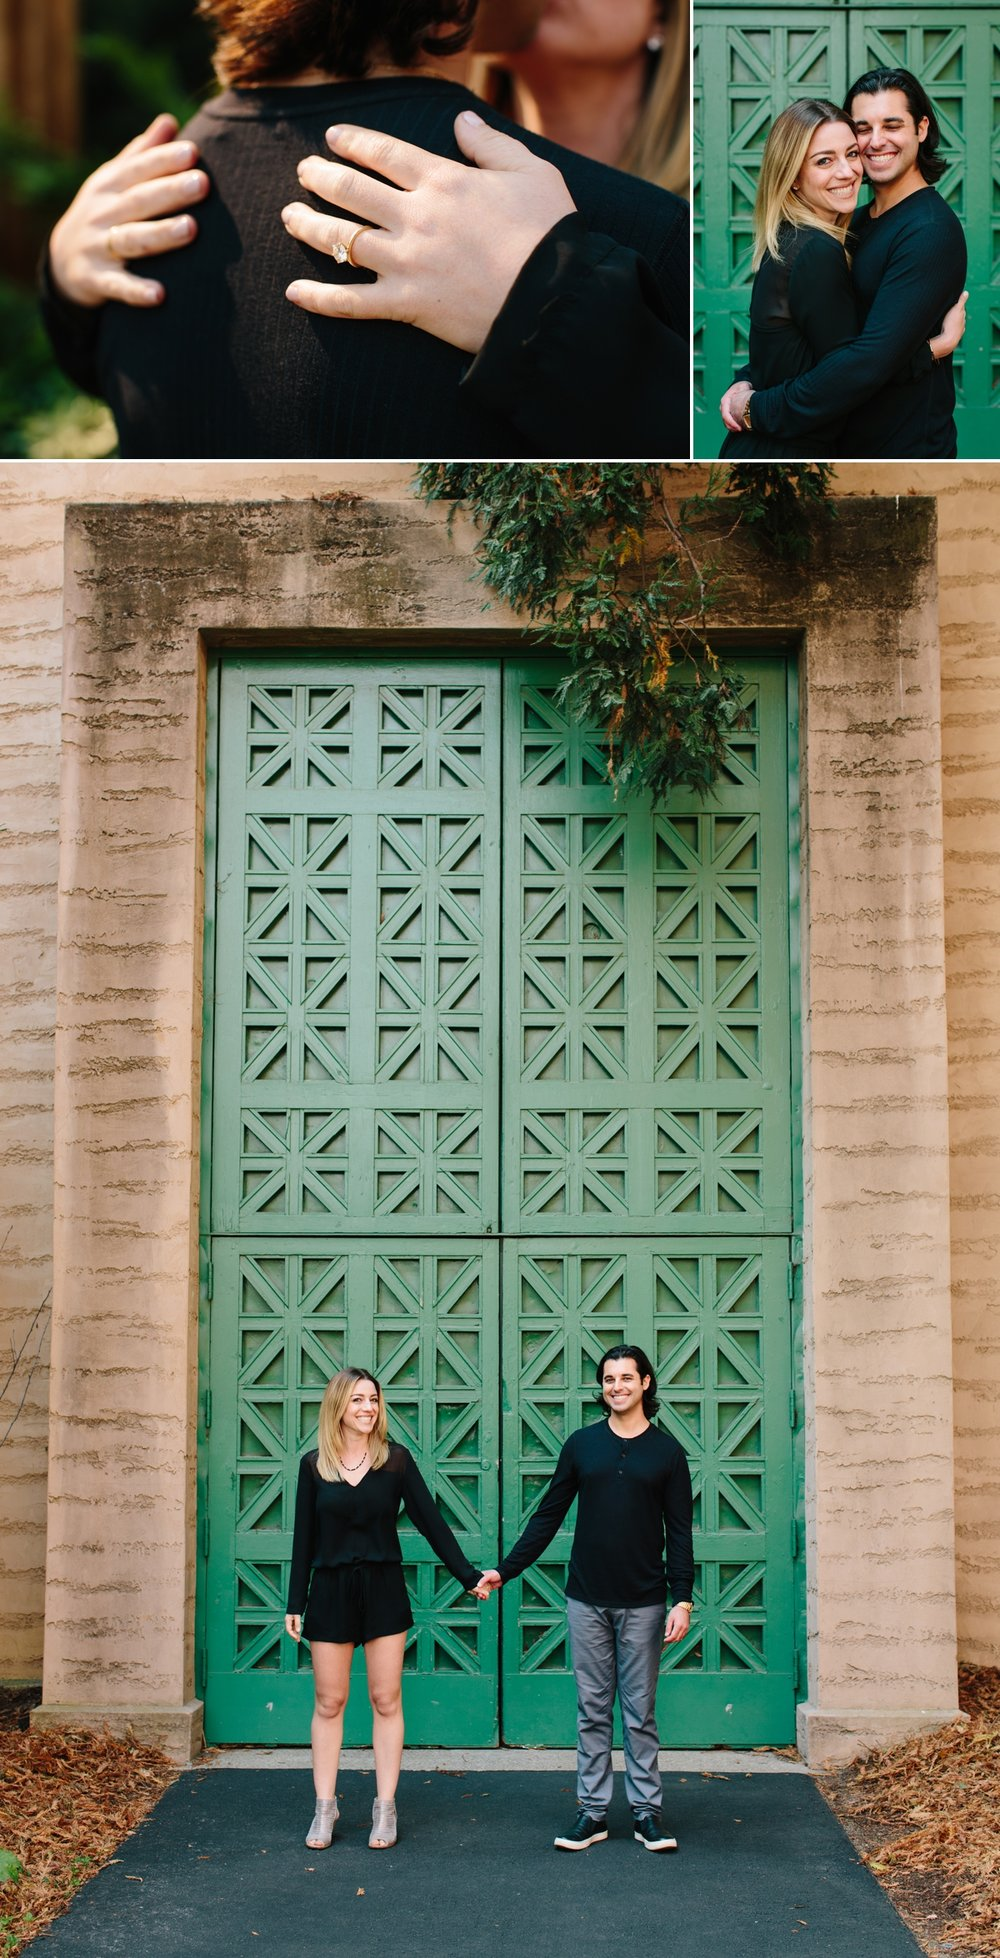 Engagement ring. Hugs at the Palace of Fine Arts. Big green doors. Happy Couple.